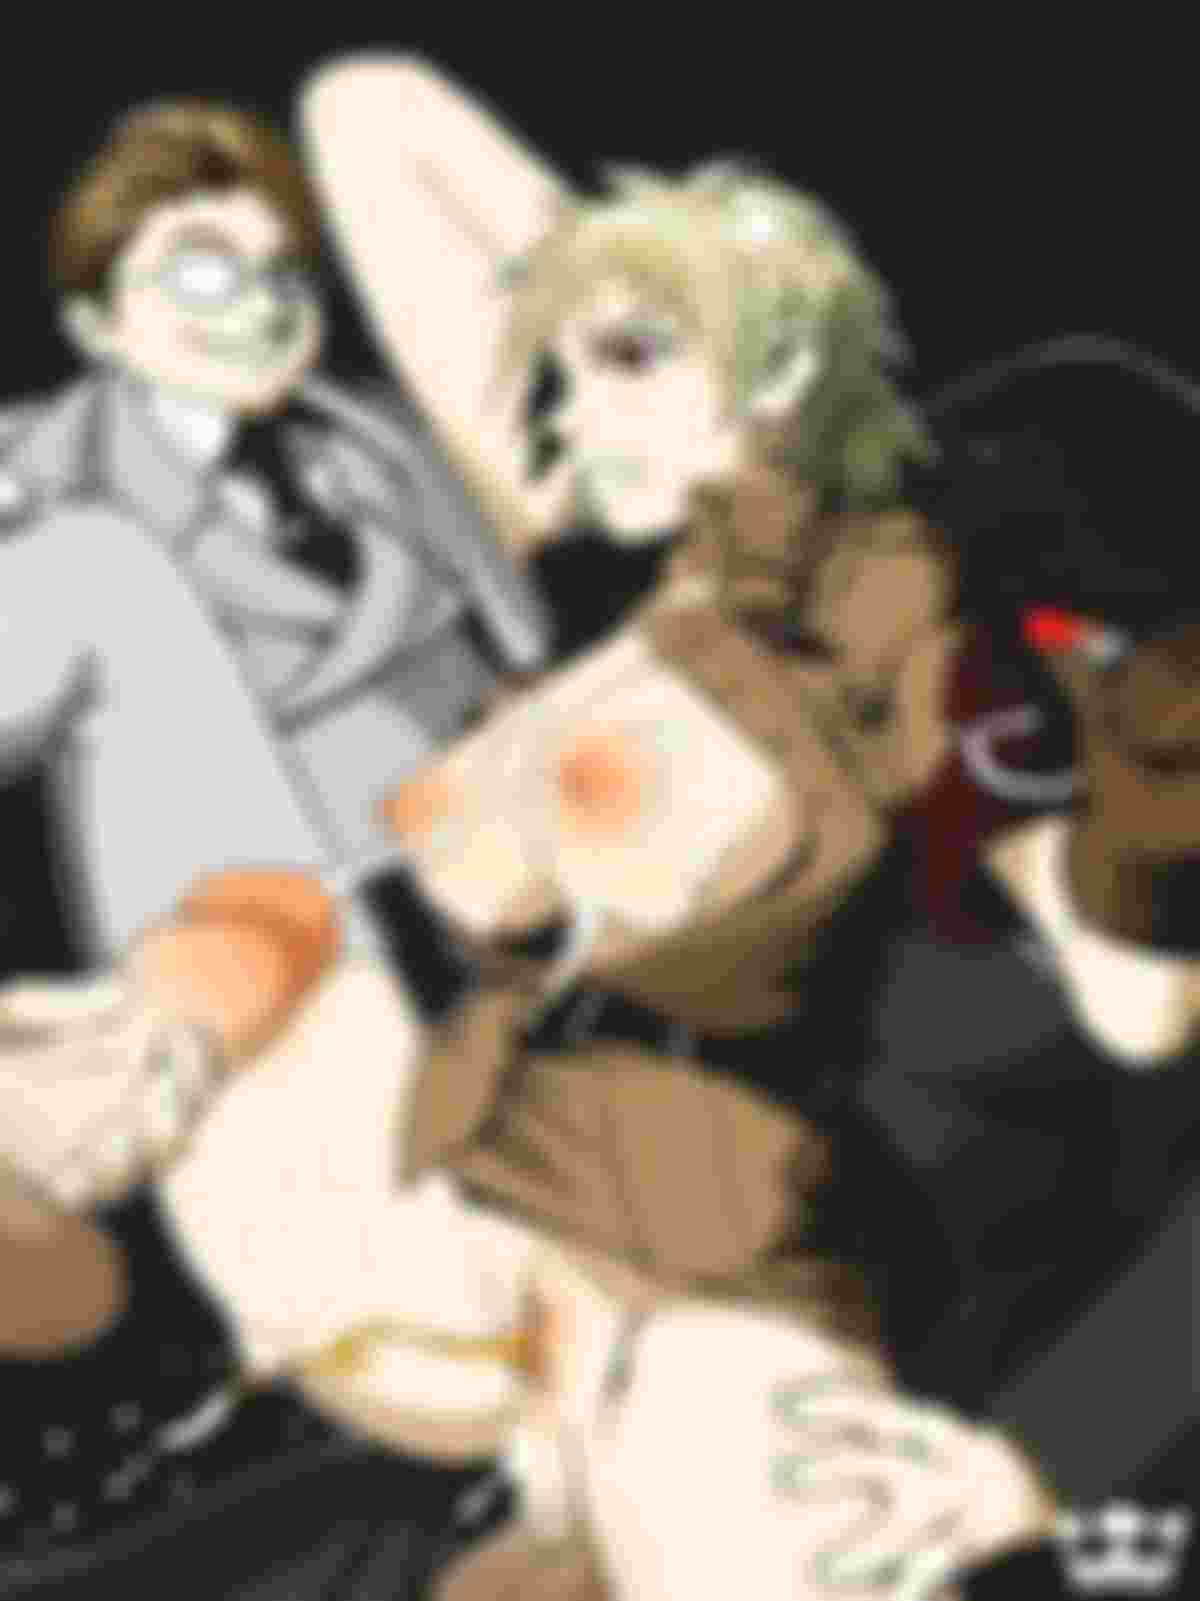 Hellsing police girl nude agree, this